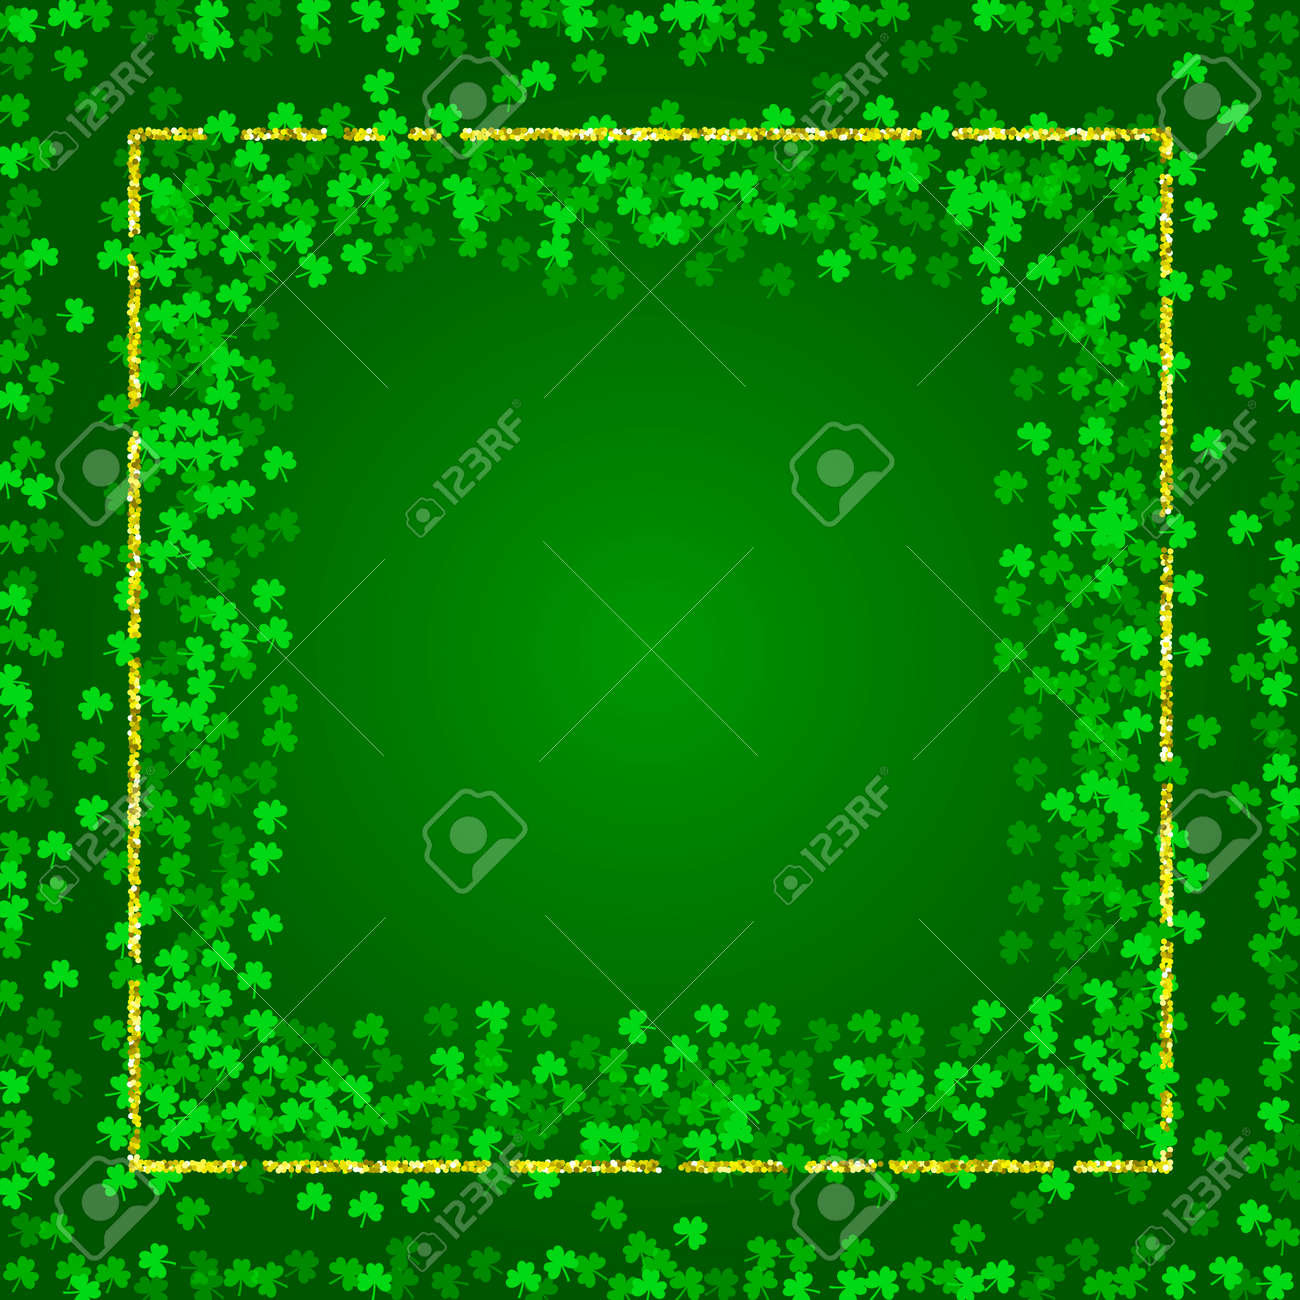 Square Saint Patricks Day Background With Green Clover Confetti